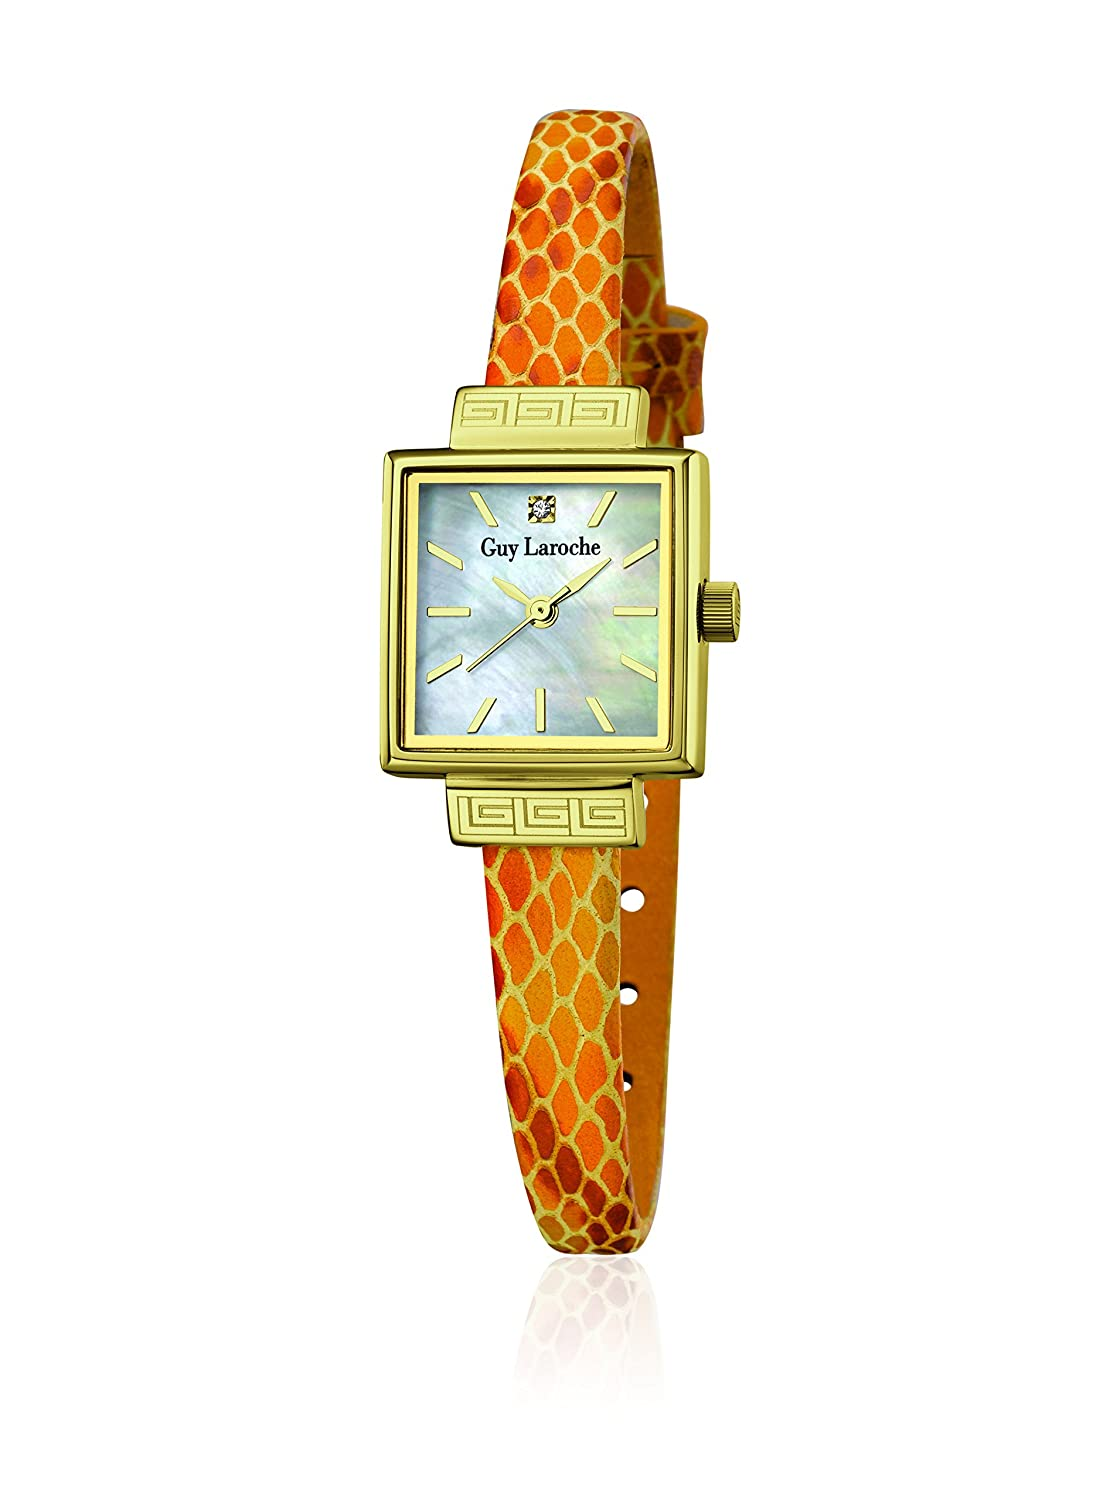 GUY LAROCHE Damenuhr - L5010-03 - Edelstahl gold - Lederband orange